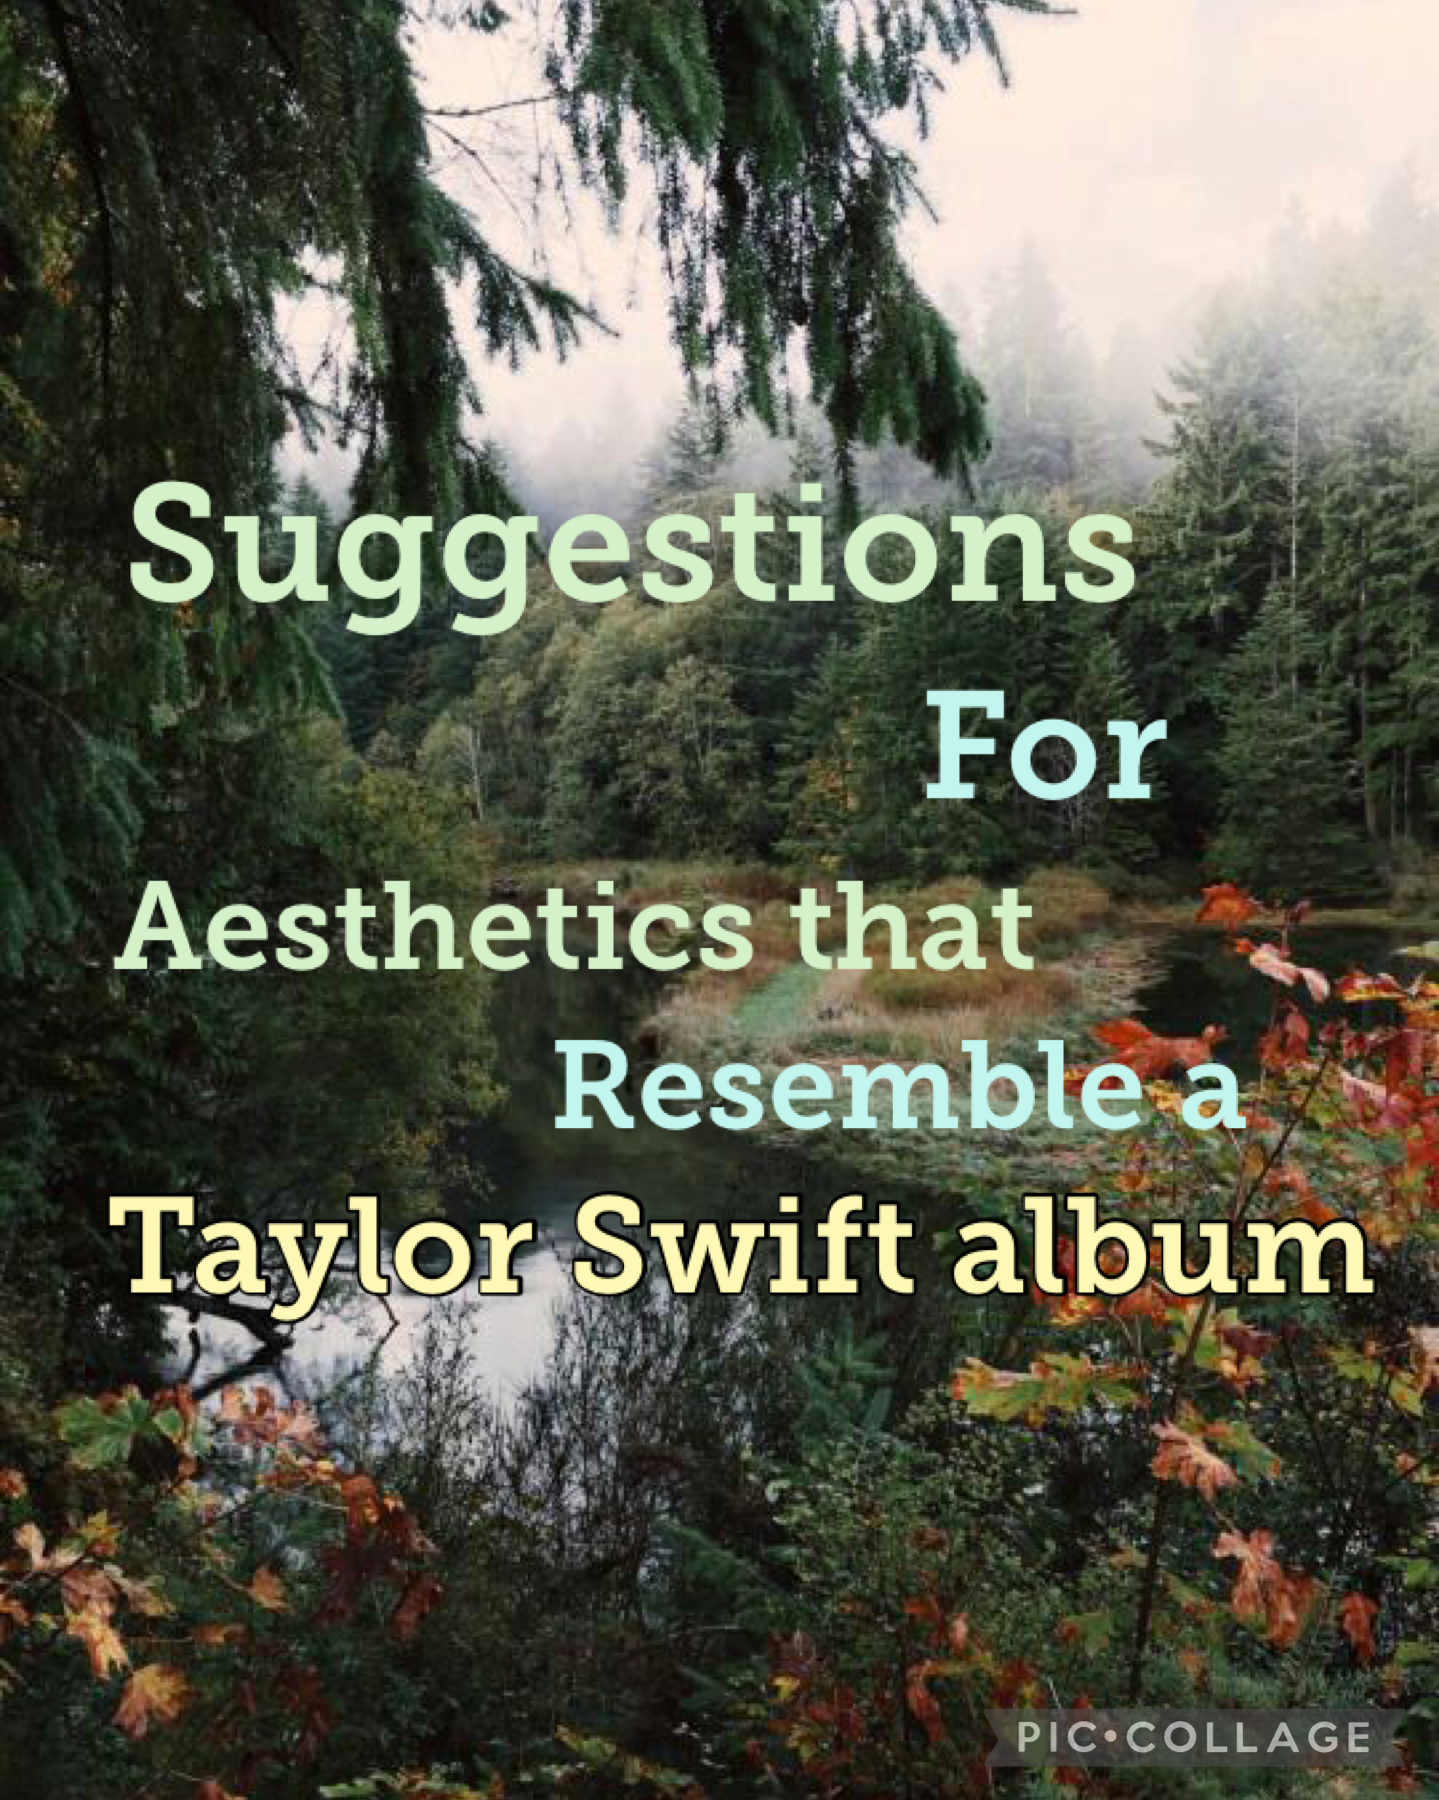 Suggestions for aesthetics that resemble a Taylor Swift album